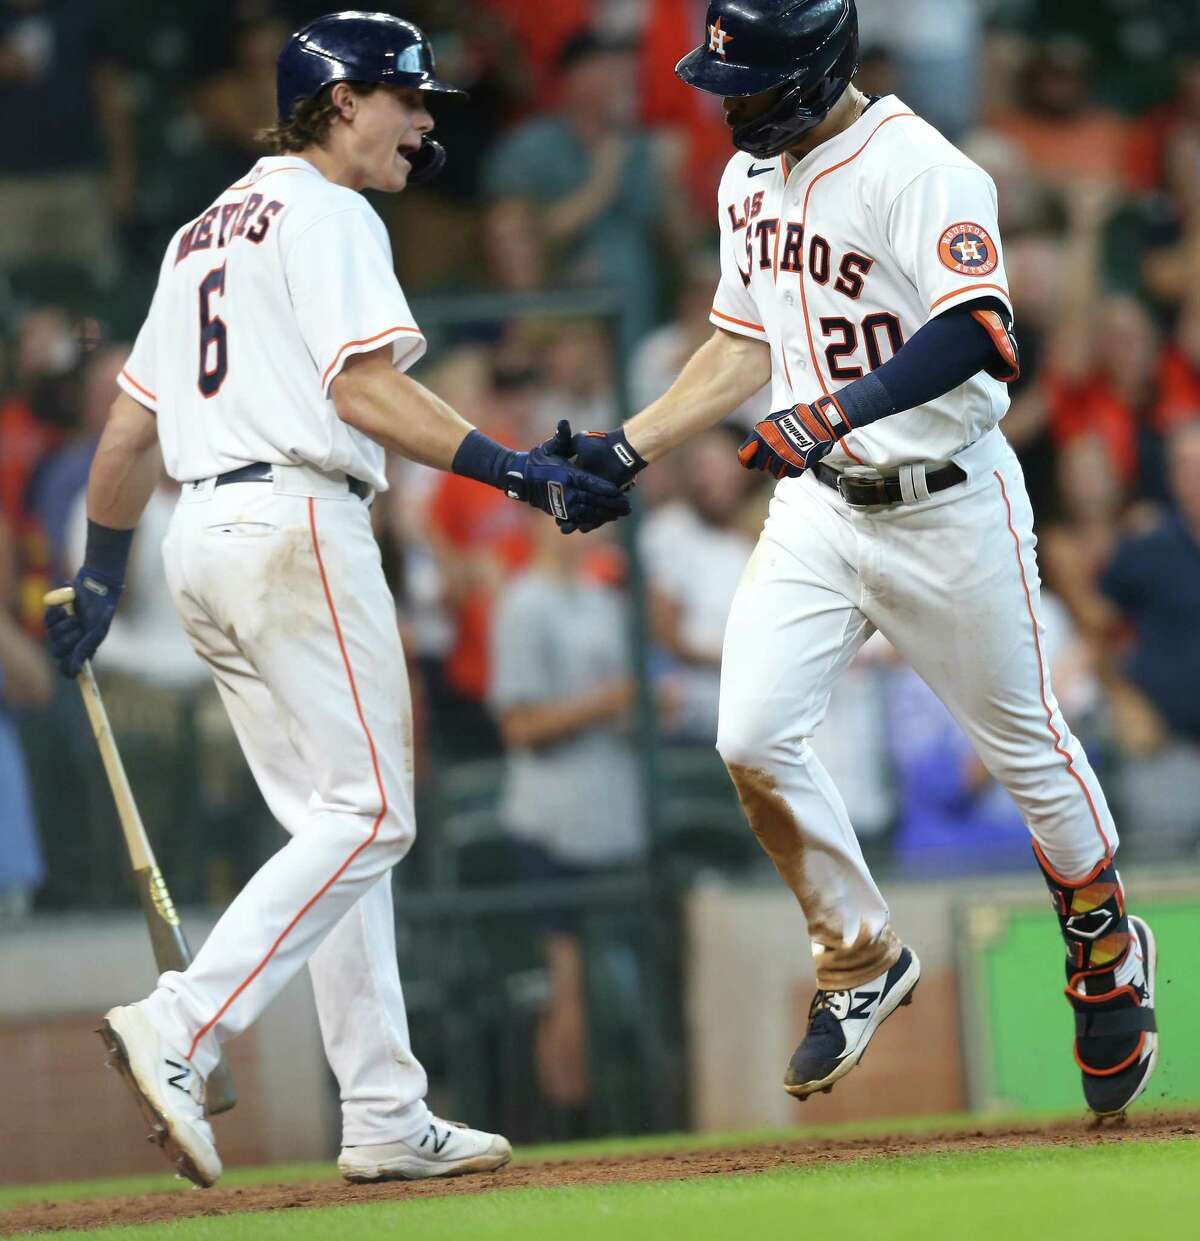 Houston Astros Jake Meyers (6) congratulates Chas McCormick (20) after's McCormick's solo home run in the bottom of the eighth inning against the Arizona Diamondbacks at Minute Maid Park in Houston on Sunday, Sept. 19, 2021.